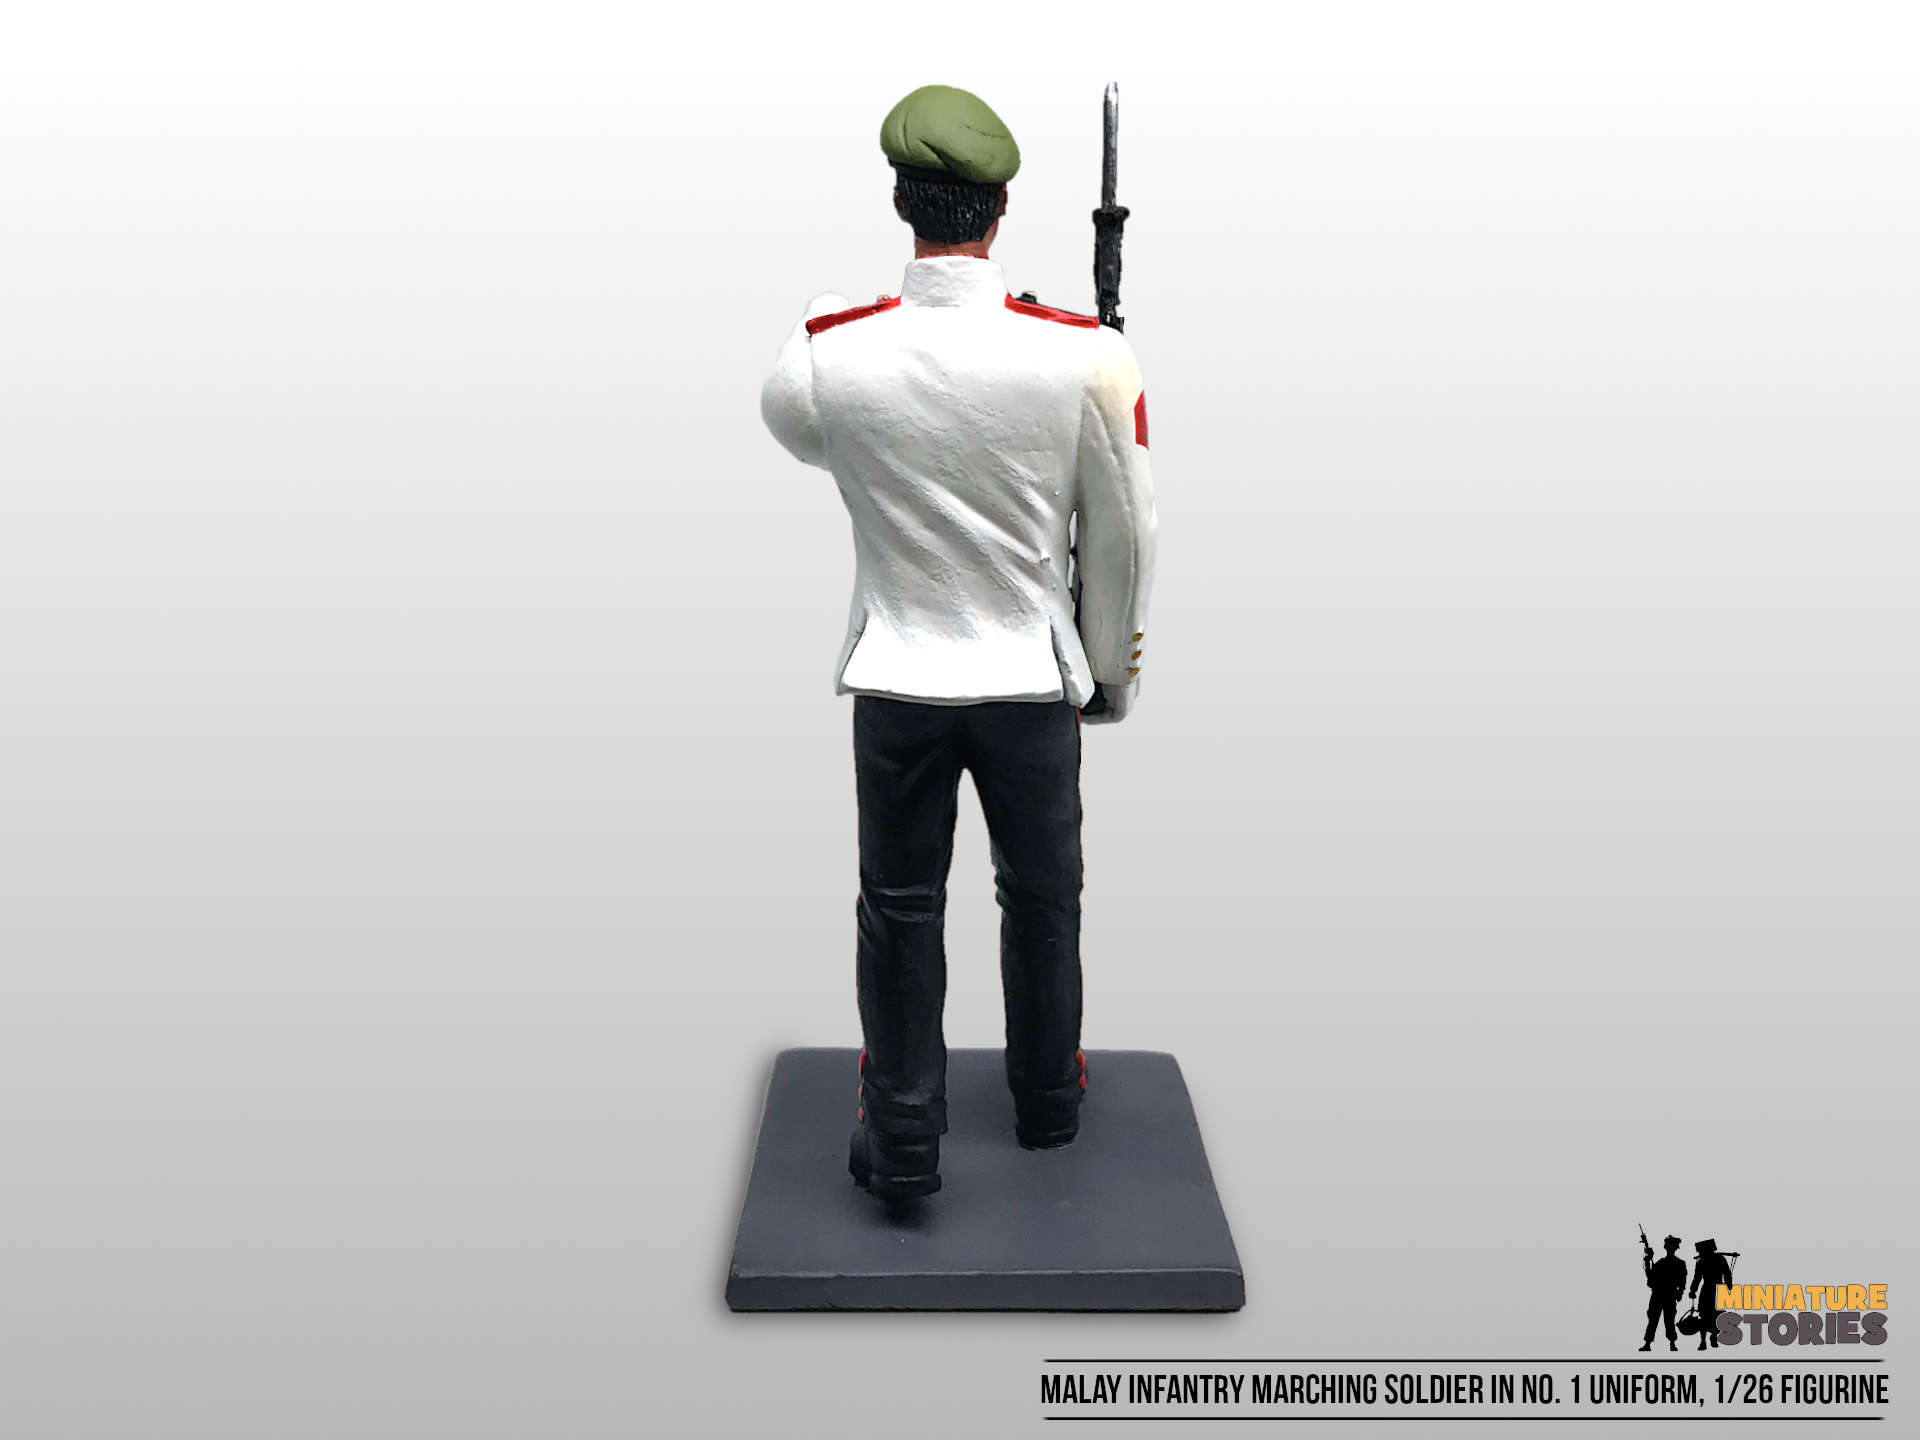 Singapore Army Infantry Soldier Figurine in No. 1 (back)